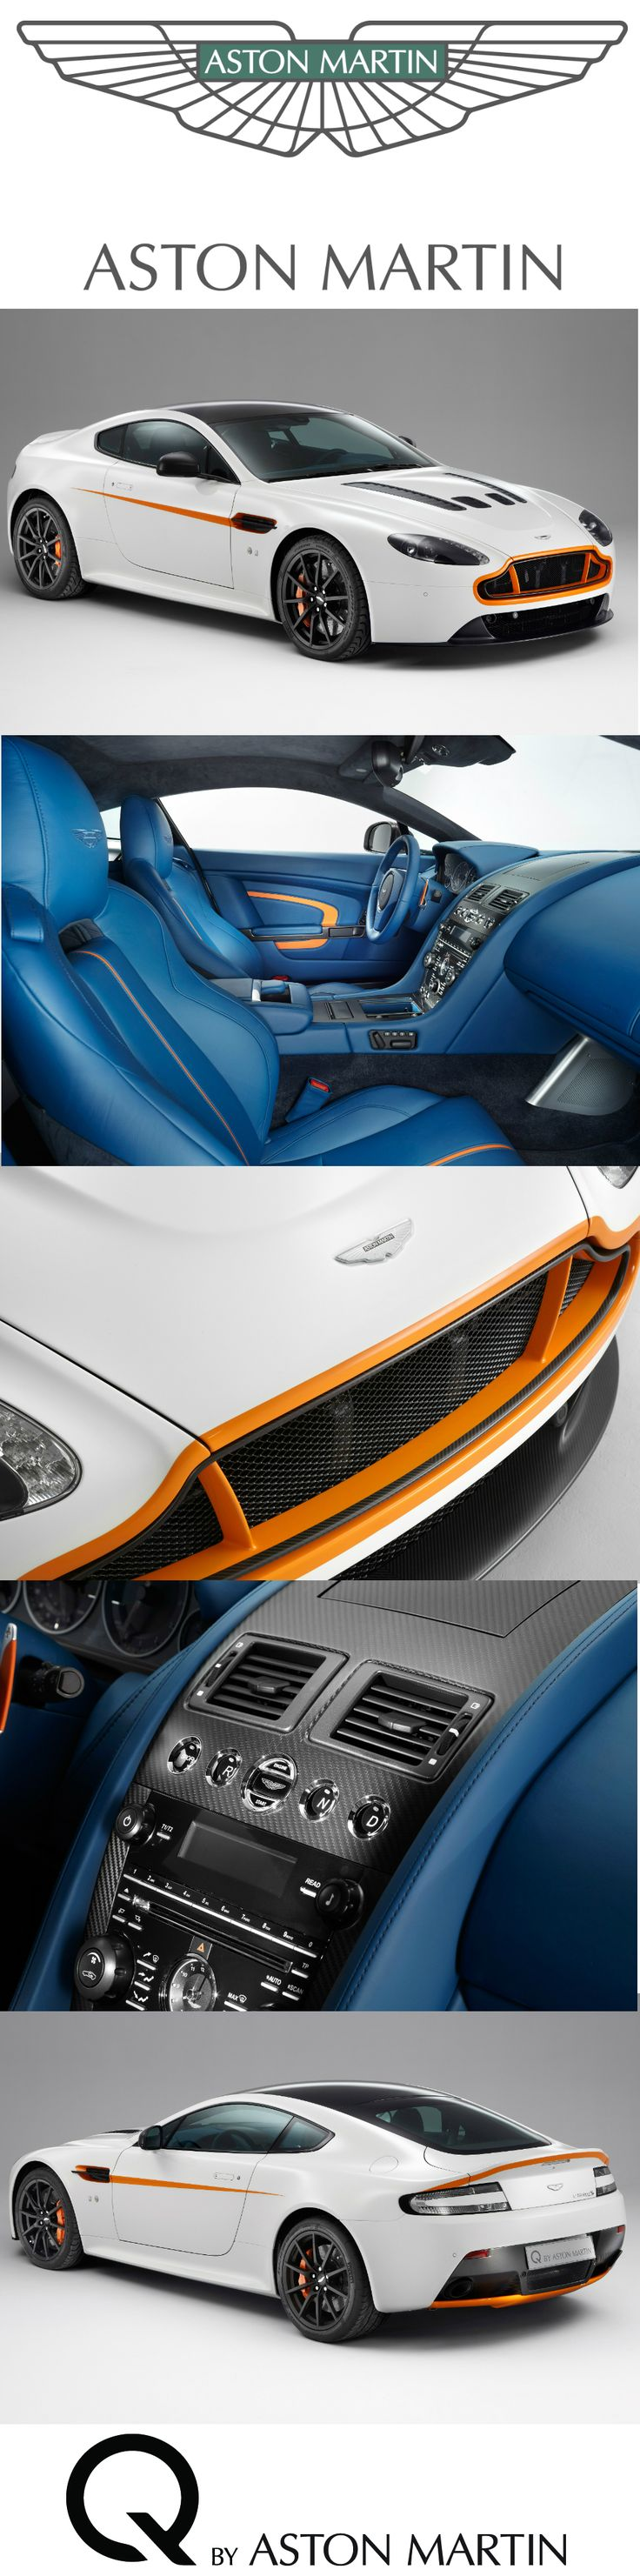 A Q by Aston Martin V12 Vantage S shown at the 84th Geneva International Motor Show. Discover more about Q by Aston Martin at http://www.astonmartin.com/colour-and-trim/q-by-aston-martin #AstonMartin